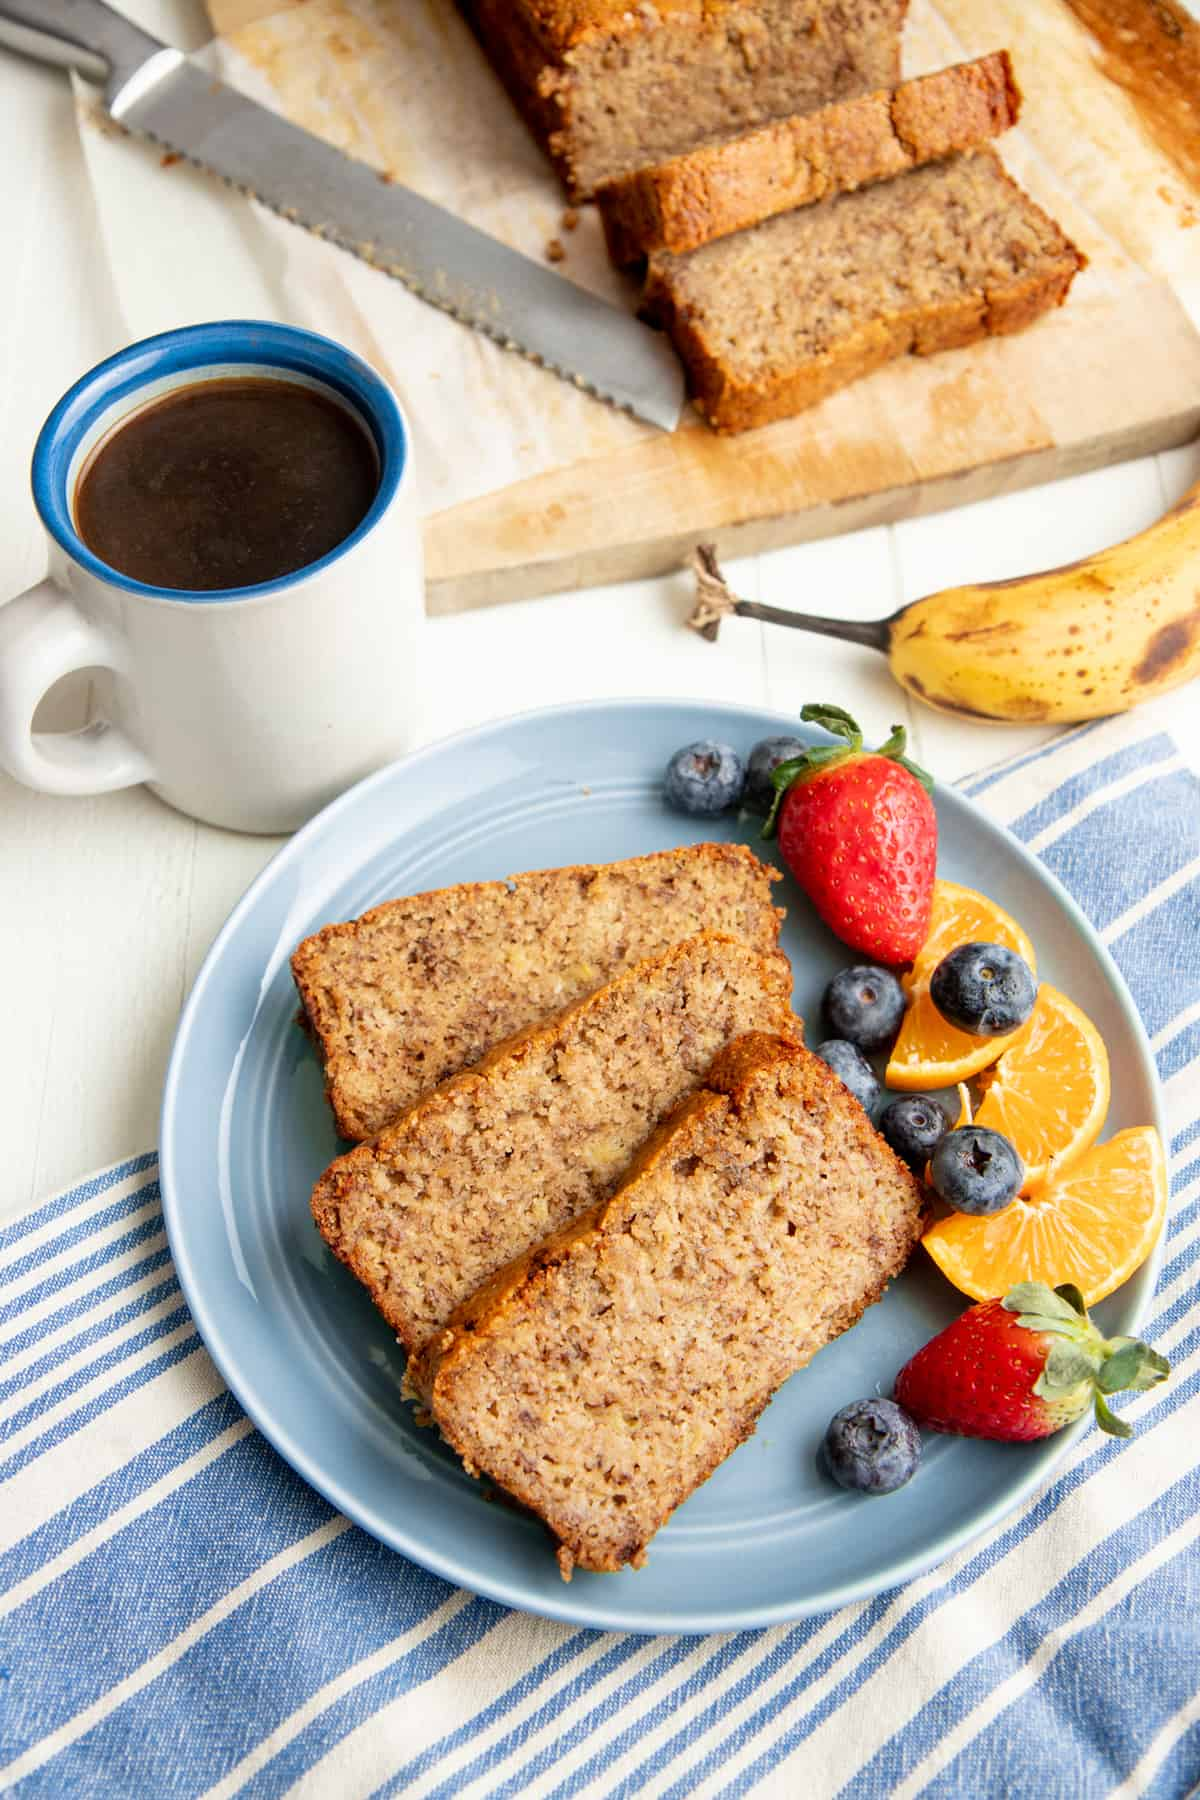 Three slices of paleo banana bread on a blue plate with mixed fruit, next to a cup of coffee.